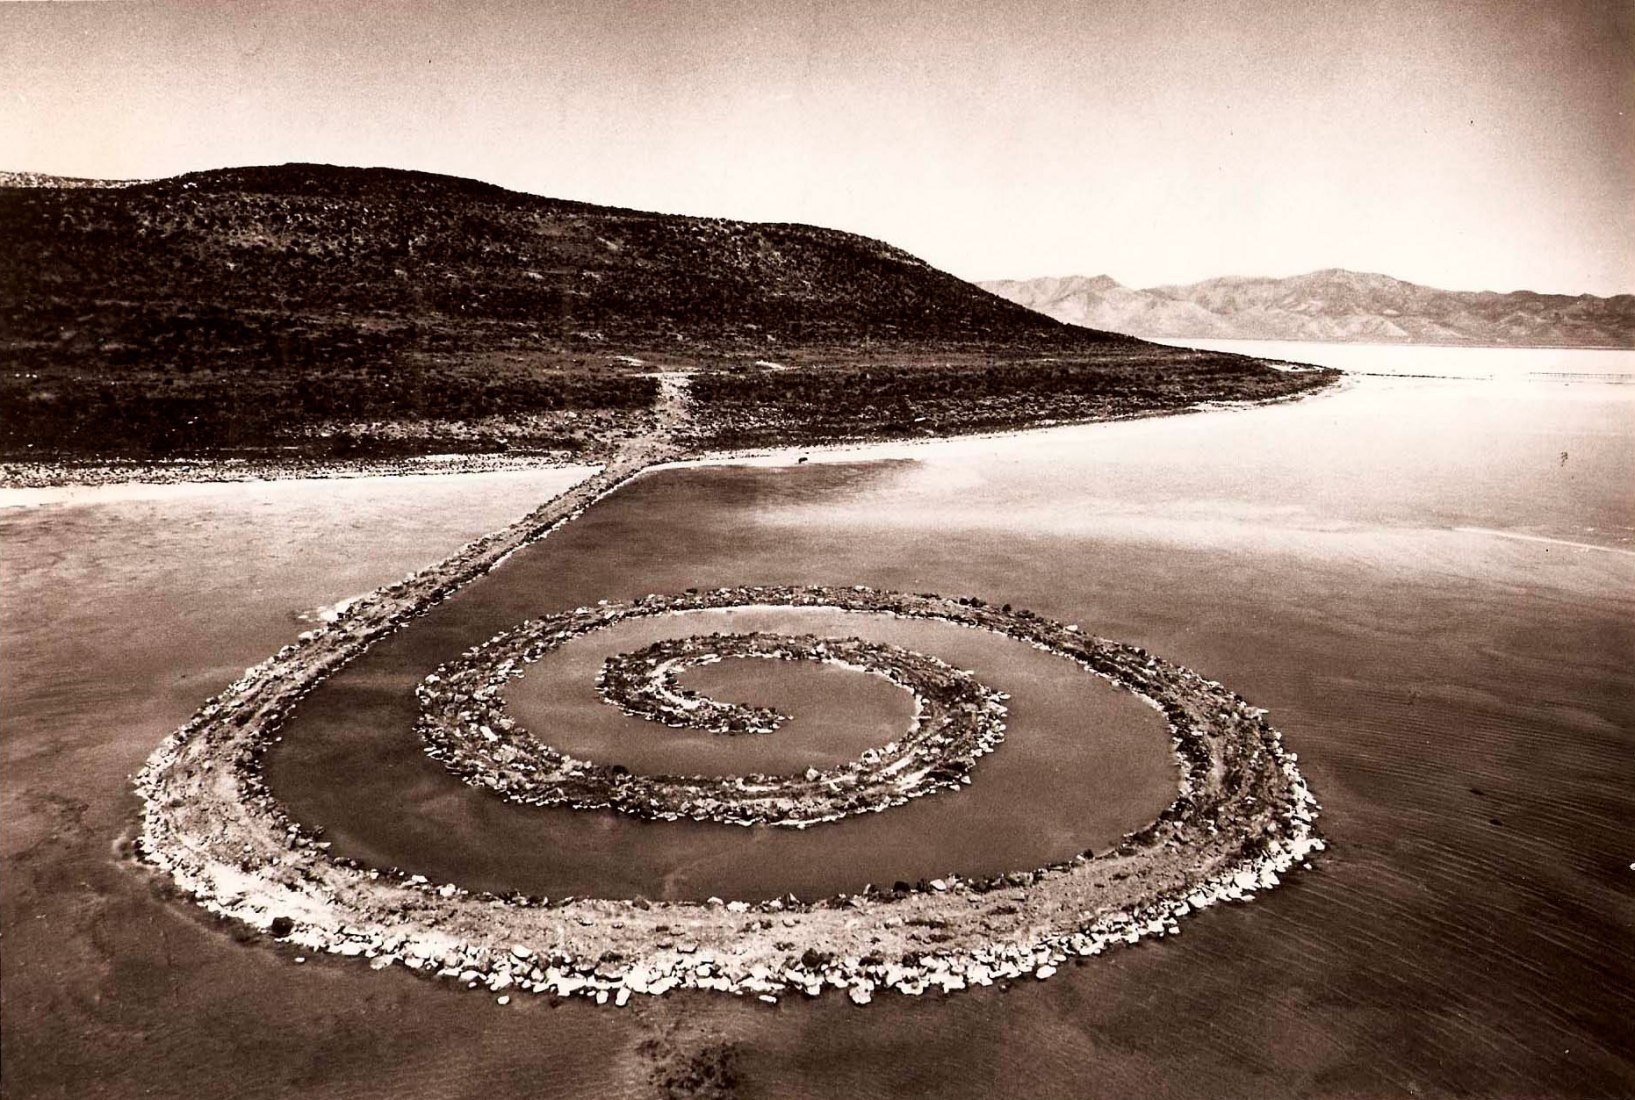 Robert Smithson's earthwork Spiral Jetty (1970) is located at Rozel Point peninsula on the northeastern shore of Great Salt Lake. Using over six thousand tons of black basalt rocks and earth from the site, Smithson formed a coil 1,500 feet long and 15 feet wide that winds counterclockwise off the shore into the water. In 1999, through the generosity of the artist Nancy Holt, Smithson's wife, and the Estate of Robert Smithson, the artwork was donated to Dia Art Foundation.